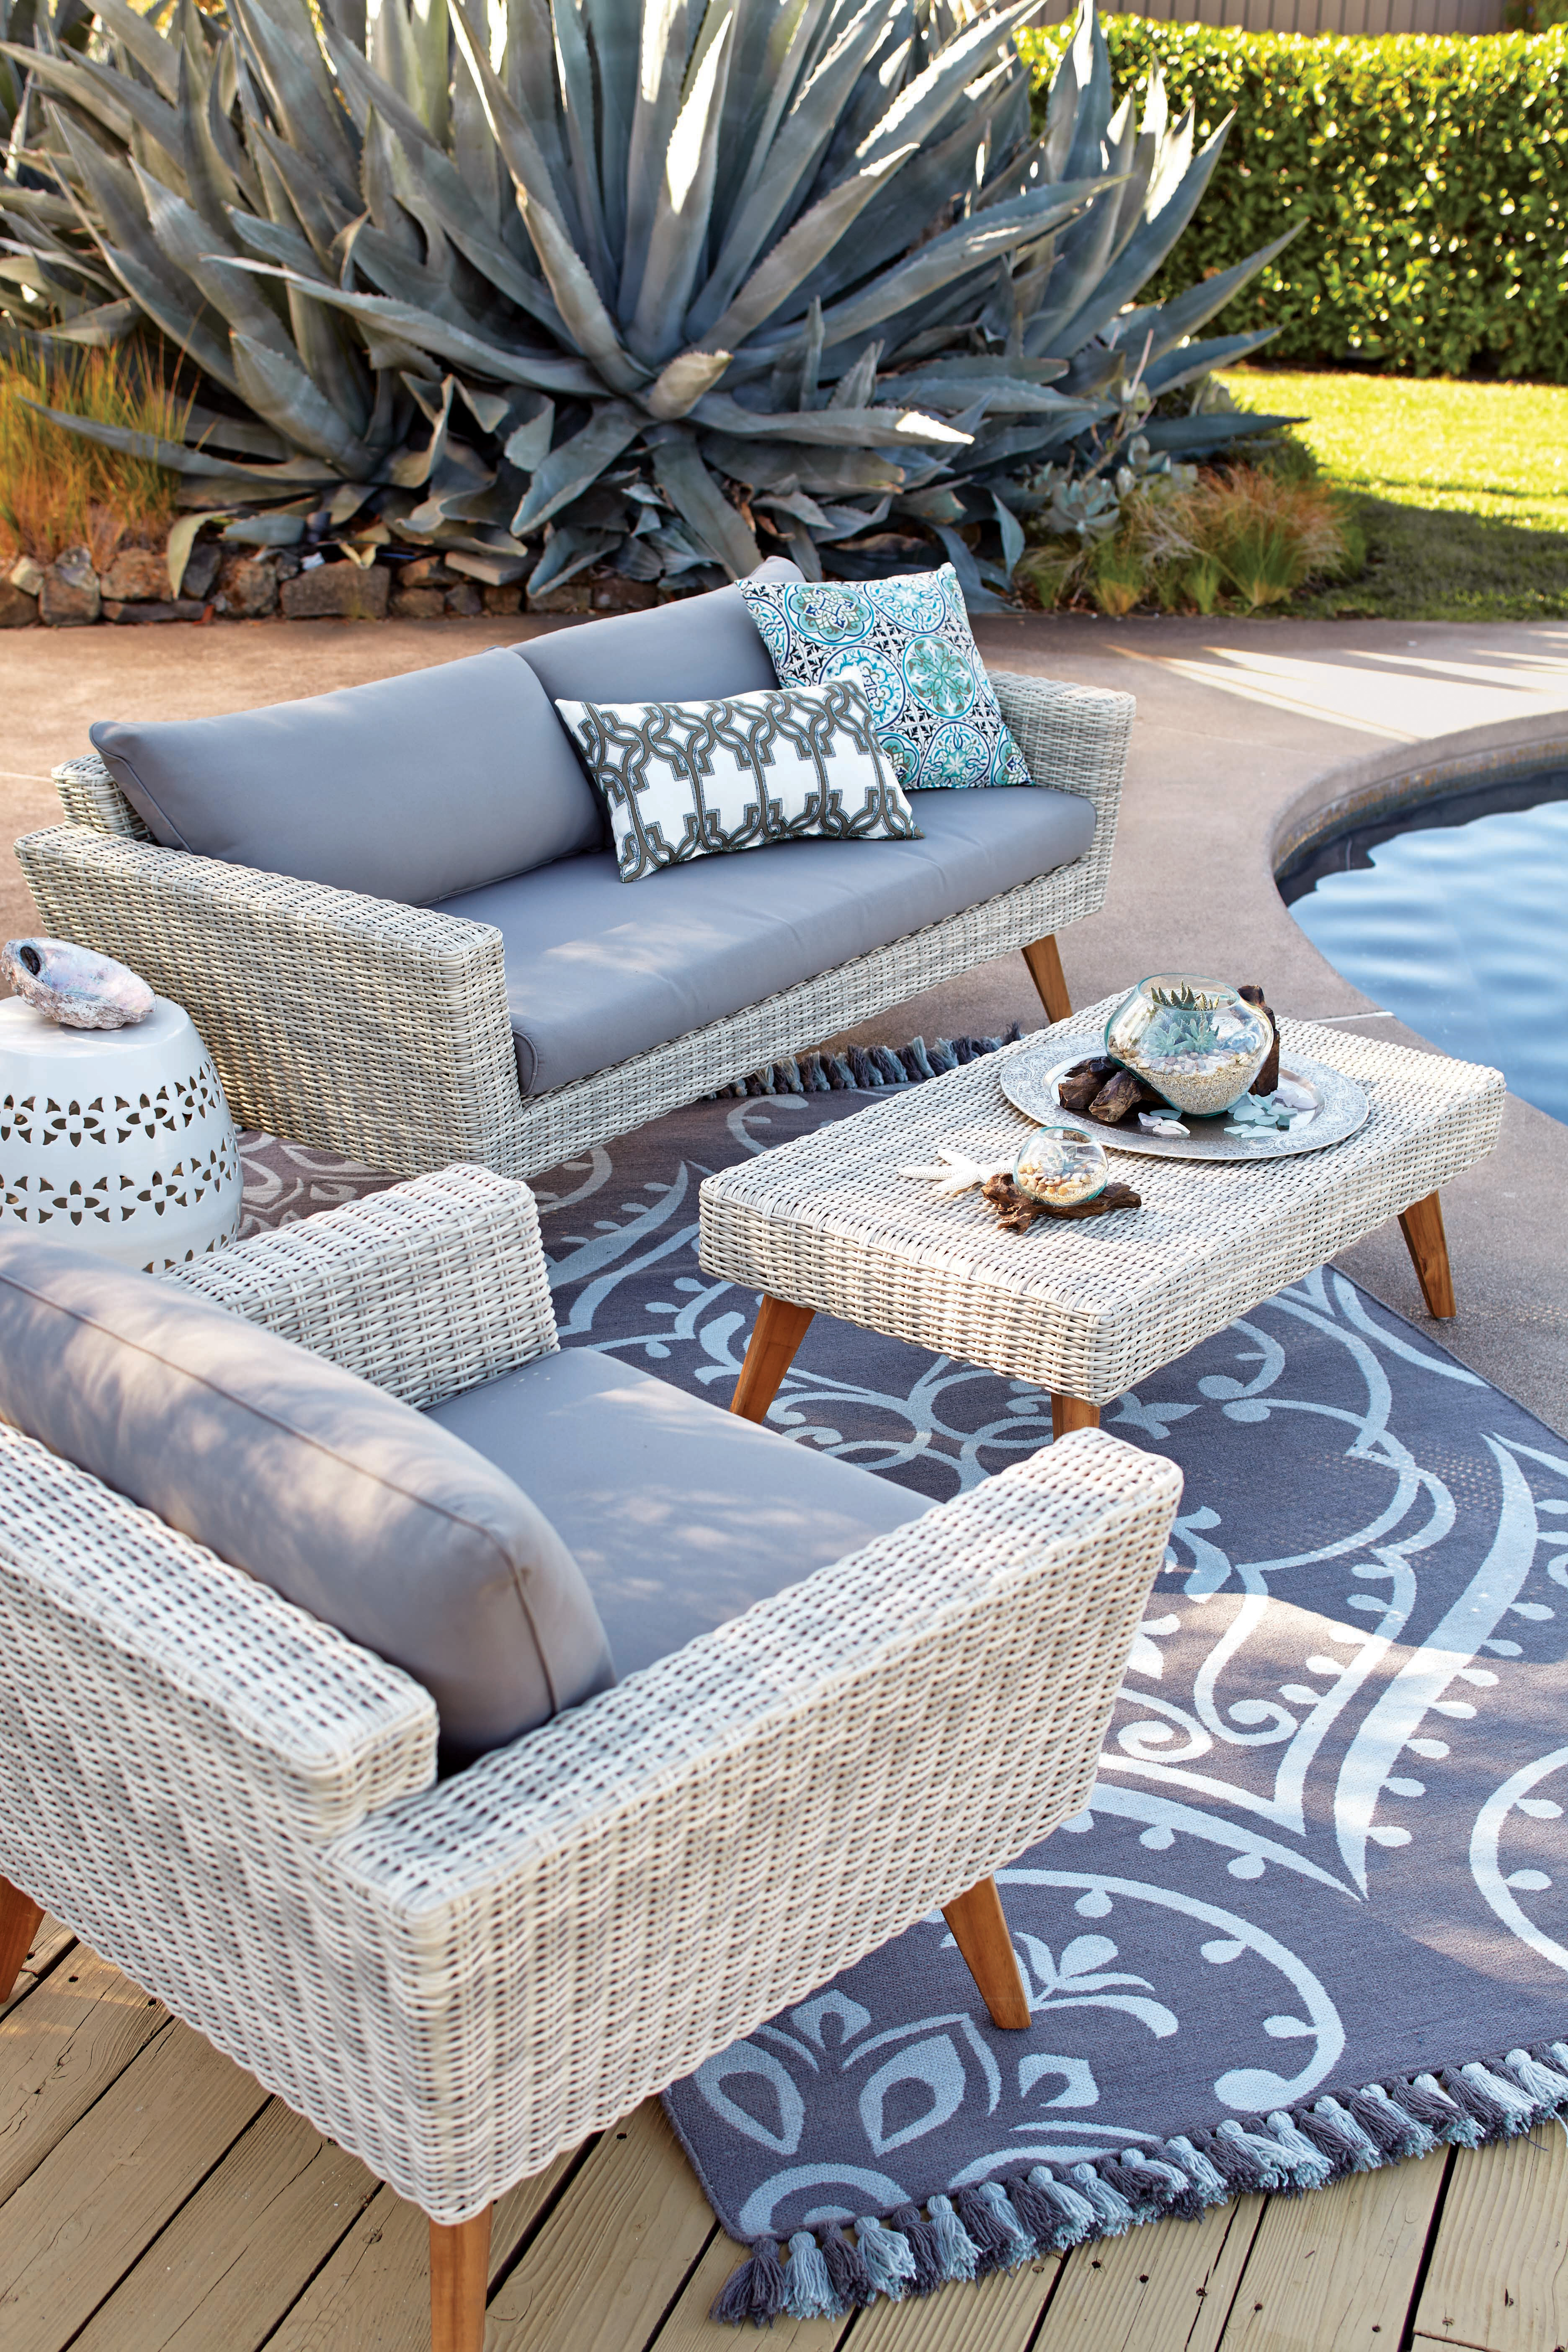 Charmant Cost Plus World Market Makes Outdoor Entertaining Easy And Affordable |  Business Wire